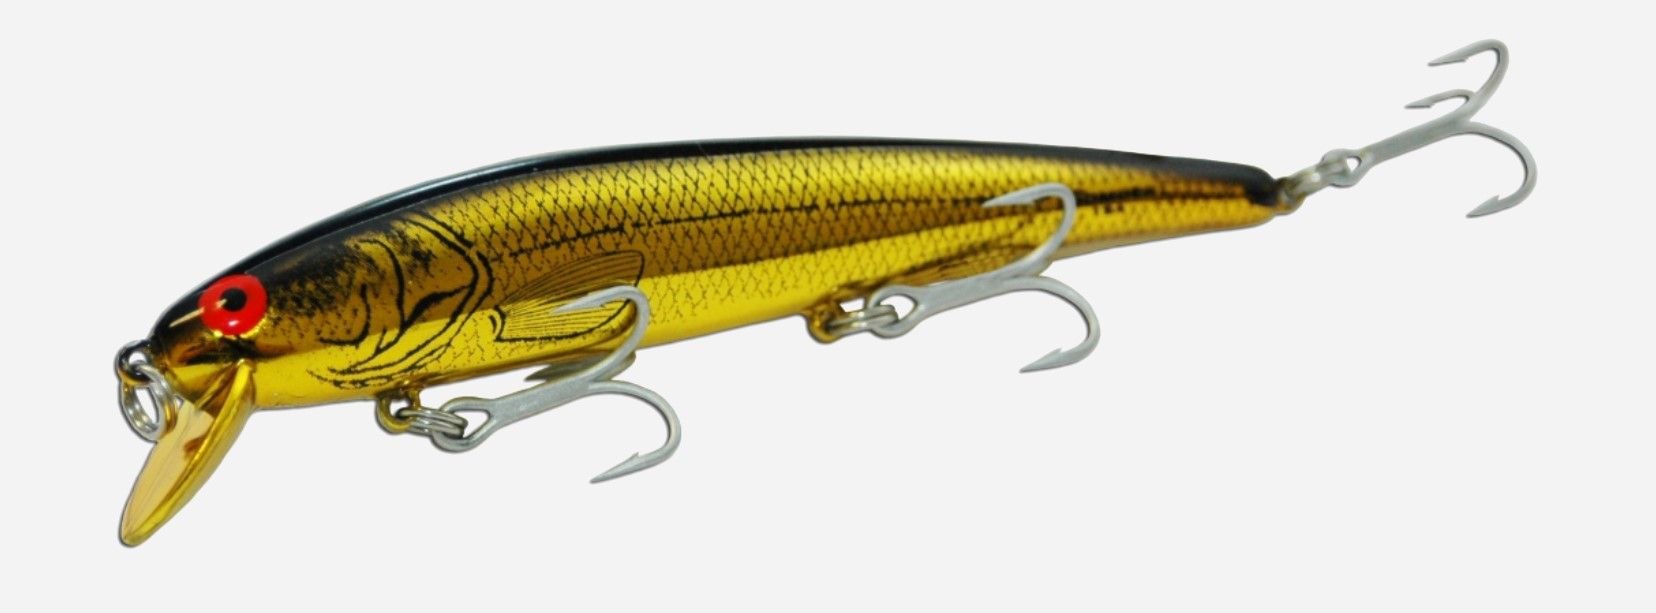 jm gillies about bomber lures